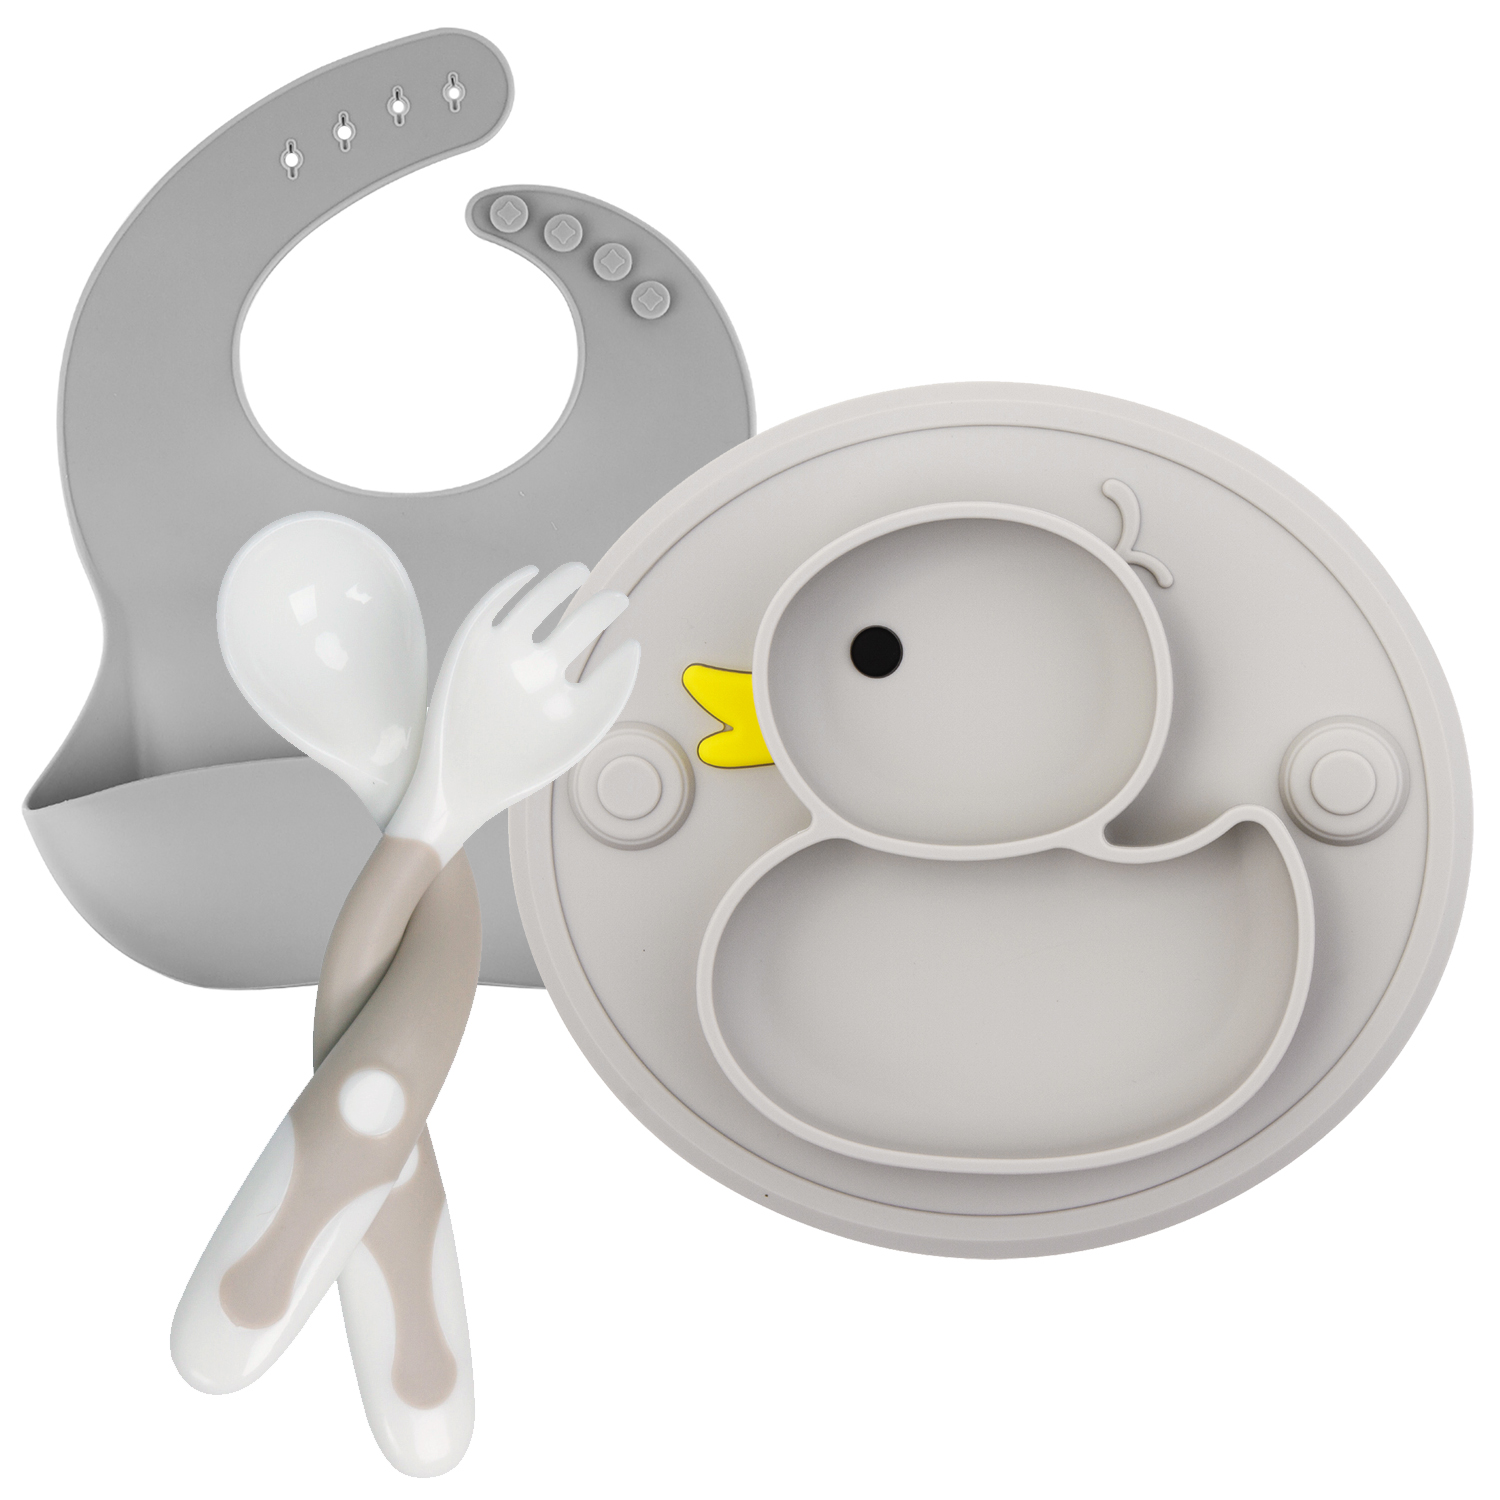 6.06US $ 54% OFF Baby Silicone Plate Set Self Feeding Antislip Saucer Suction Children's Tableware S...